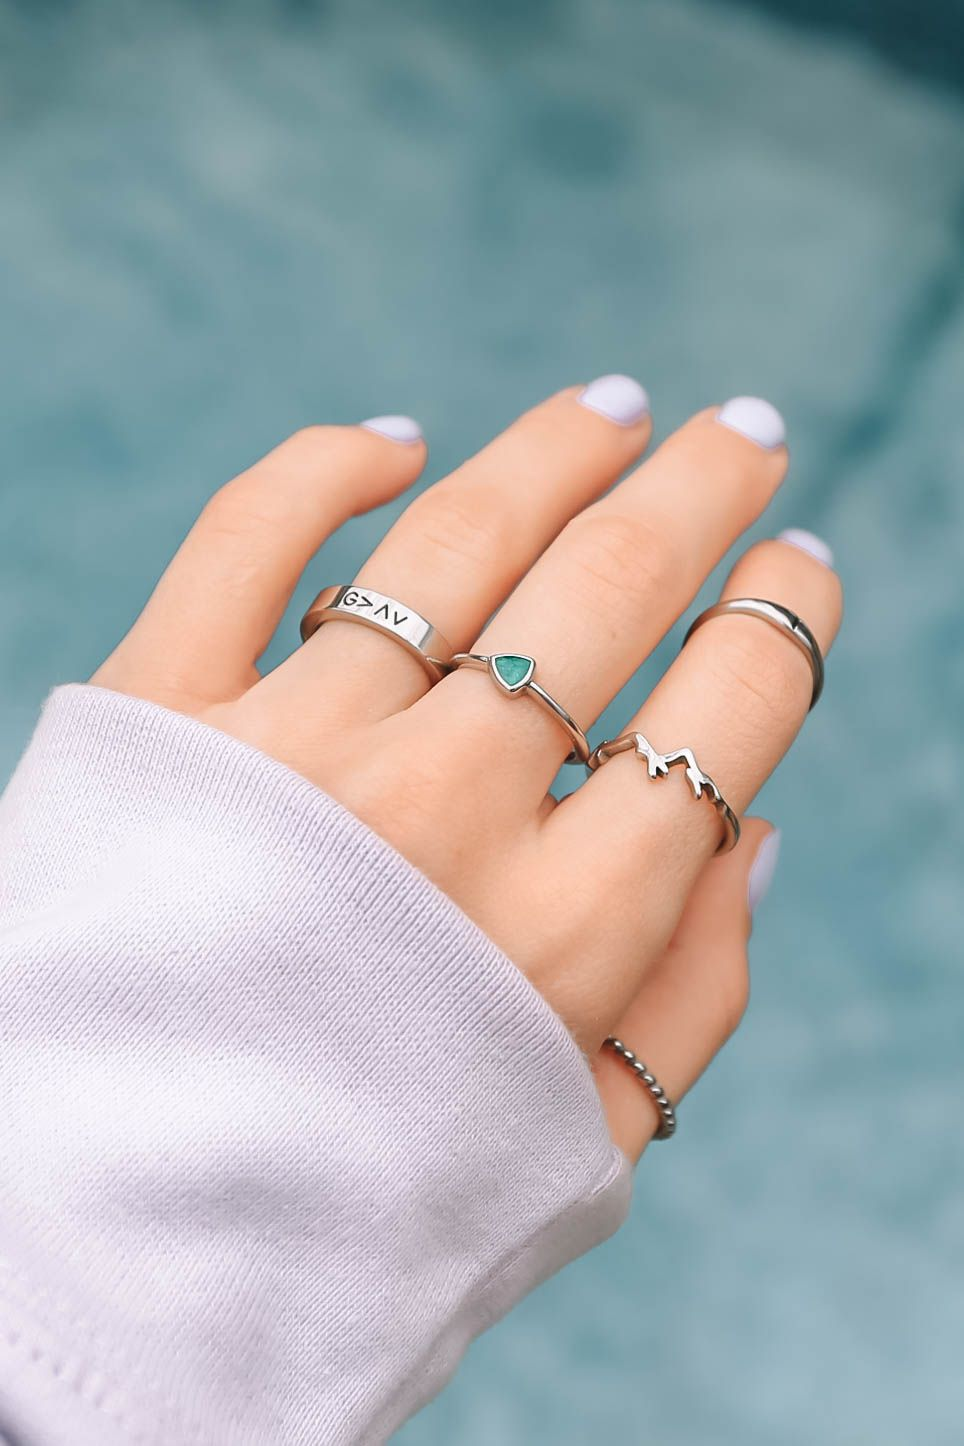 Stainless Steel l highs and lows ring l mountain ring l